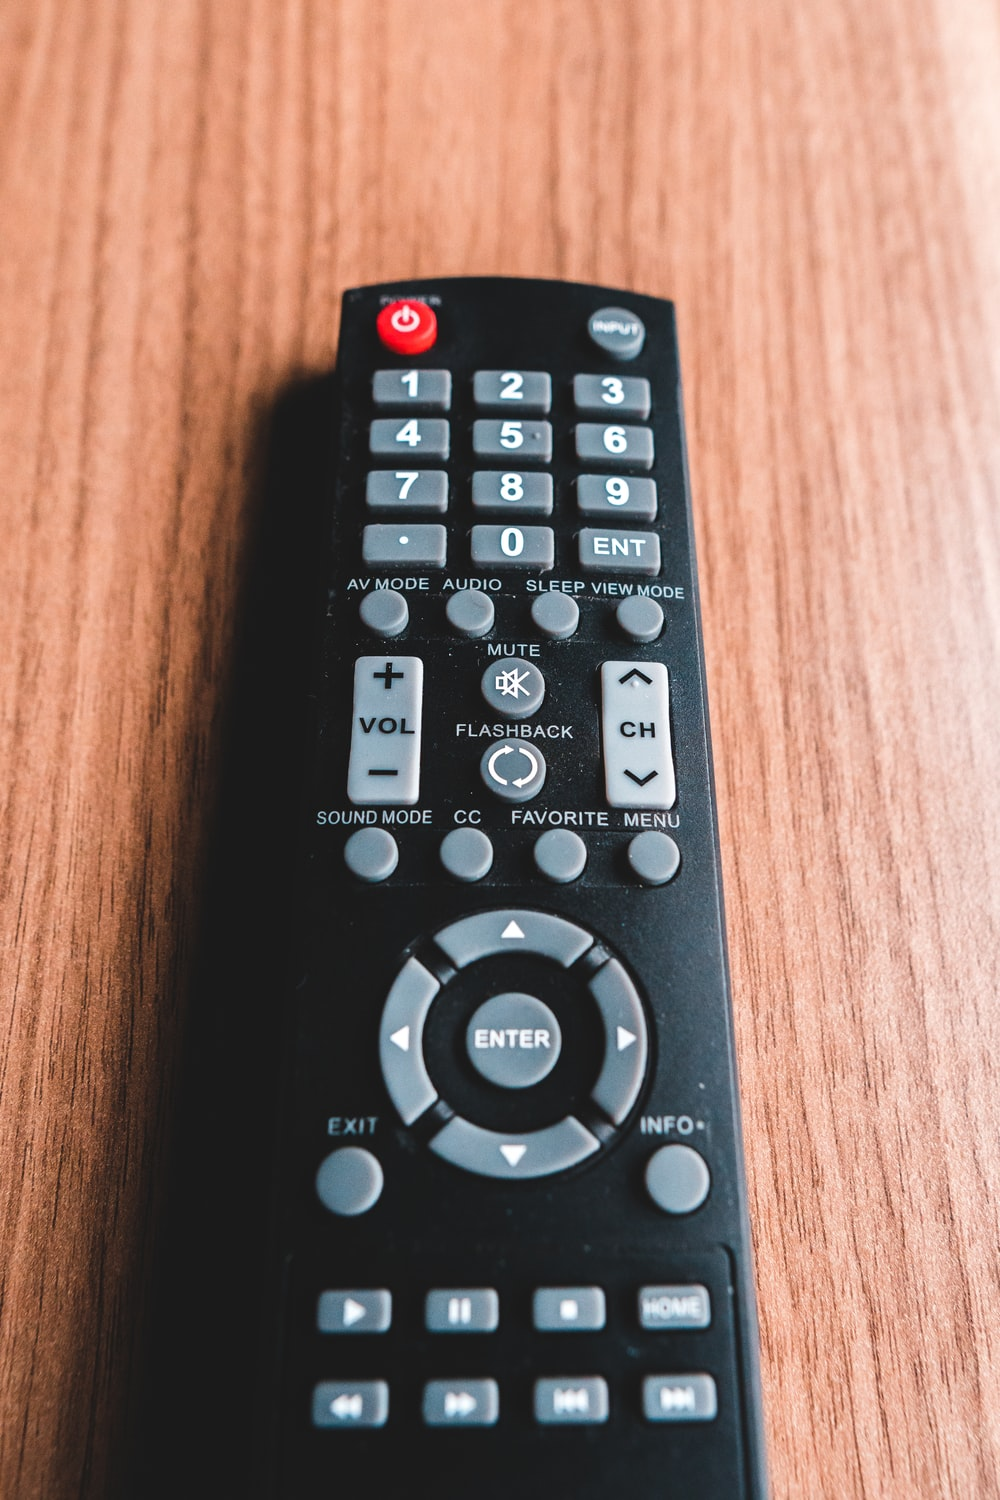 black remote control on brown wooden table